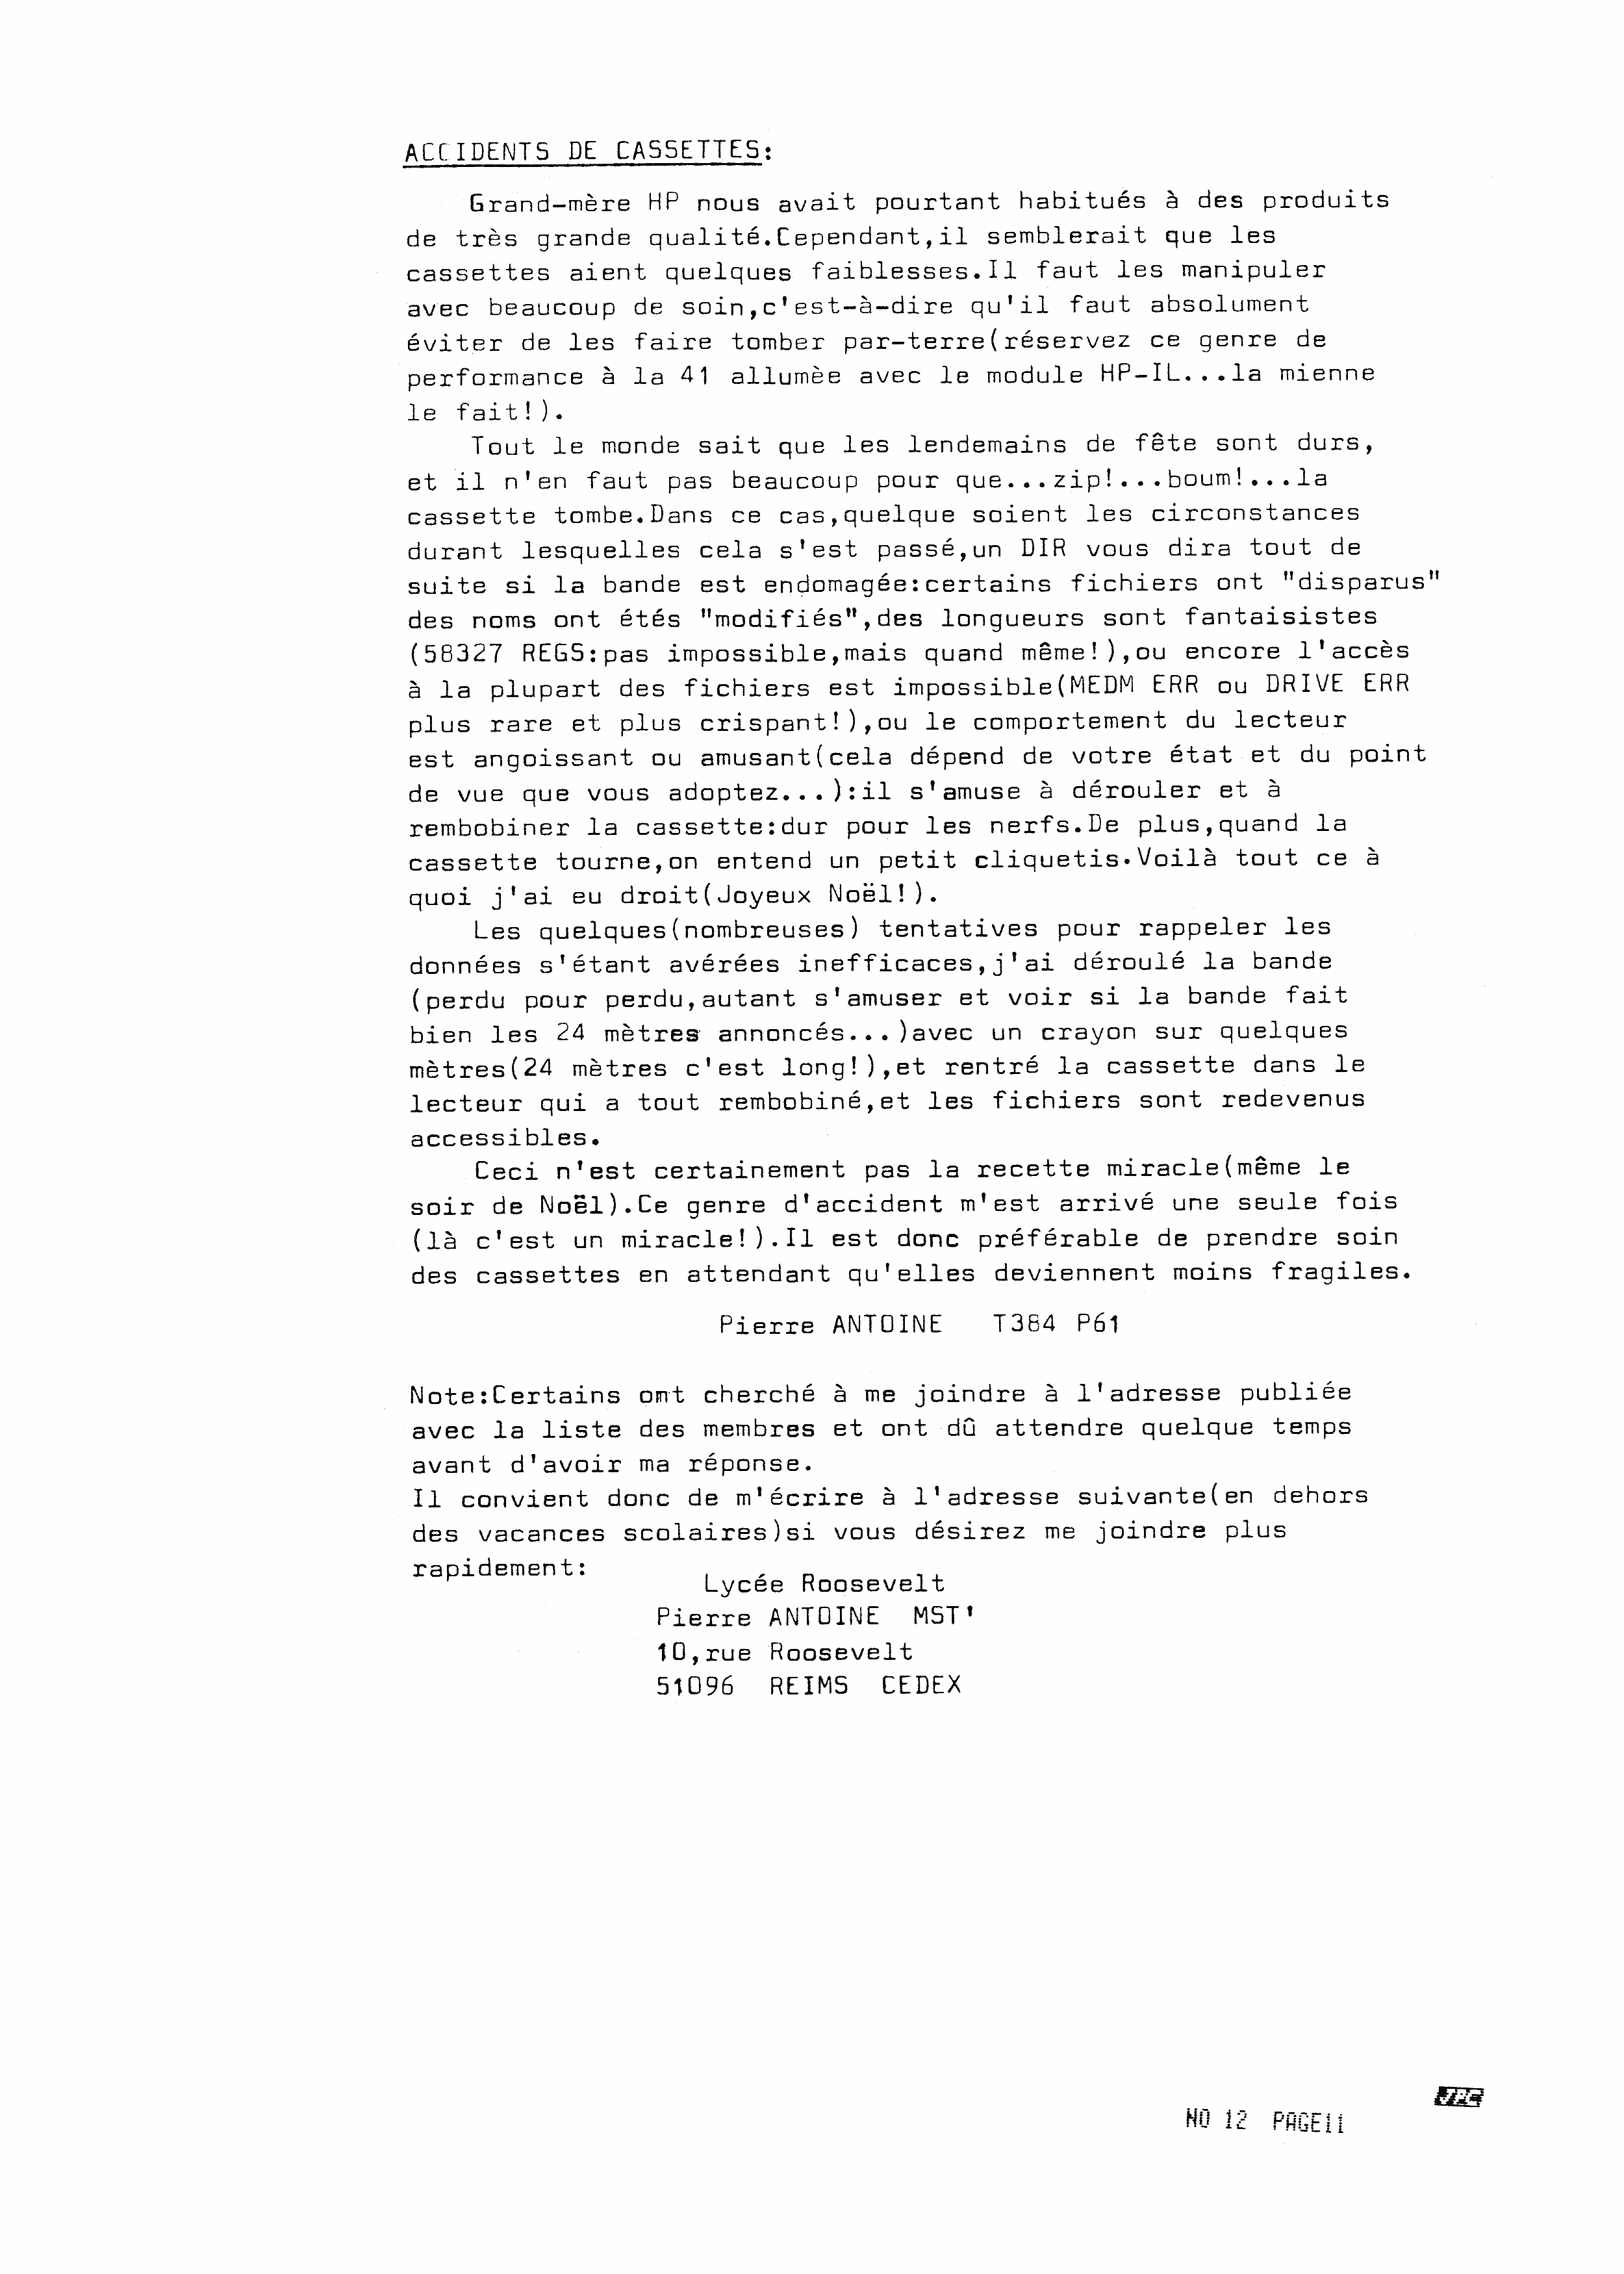 Jp-12-page-11-1000